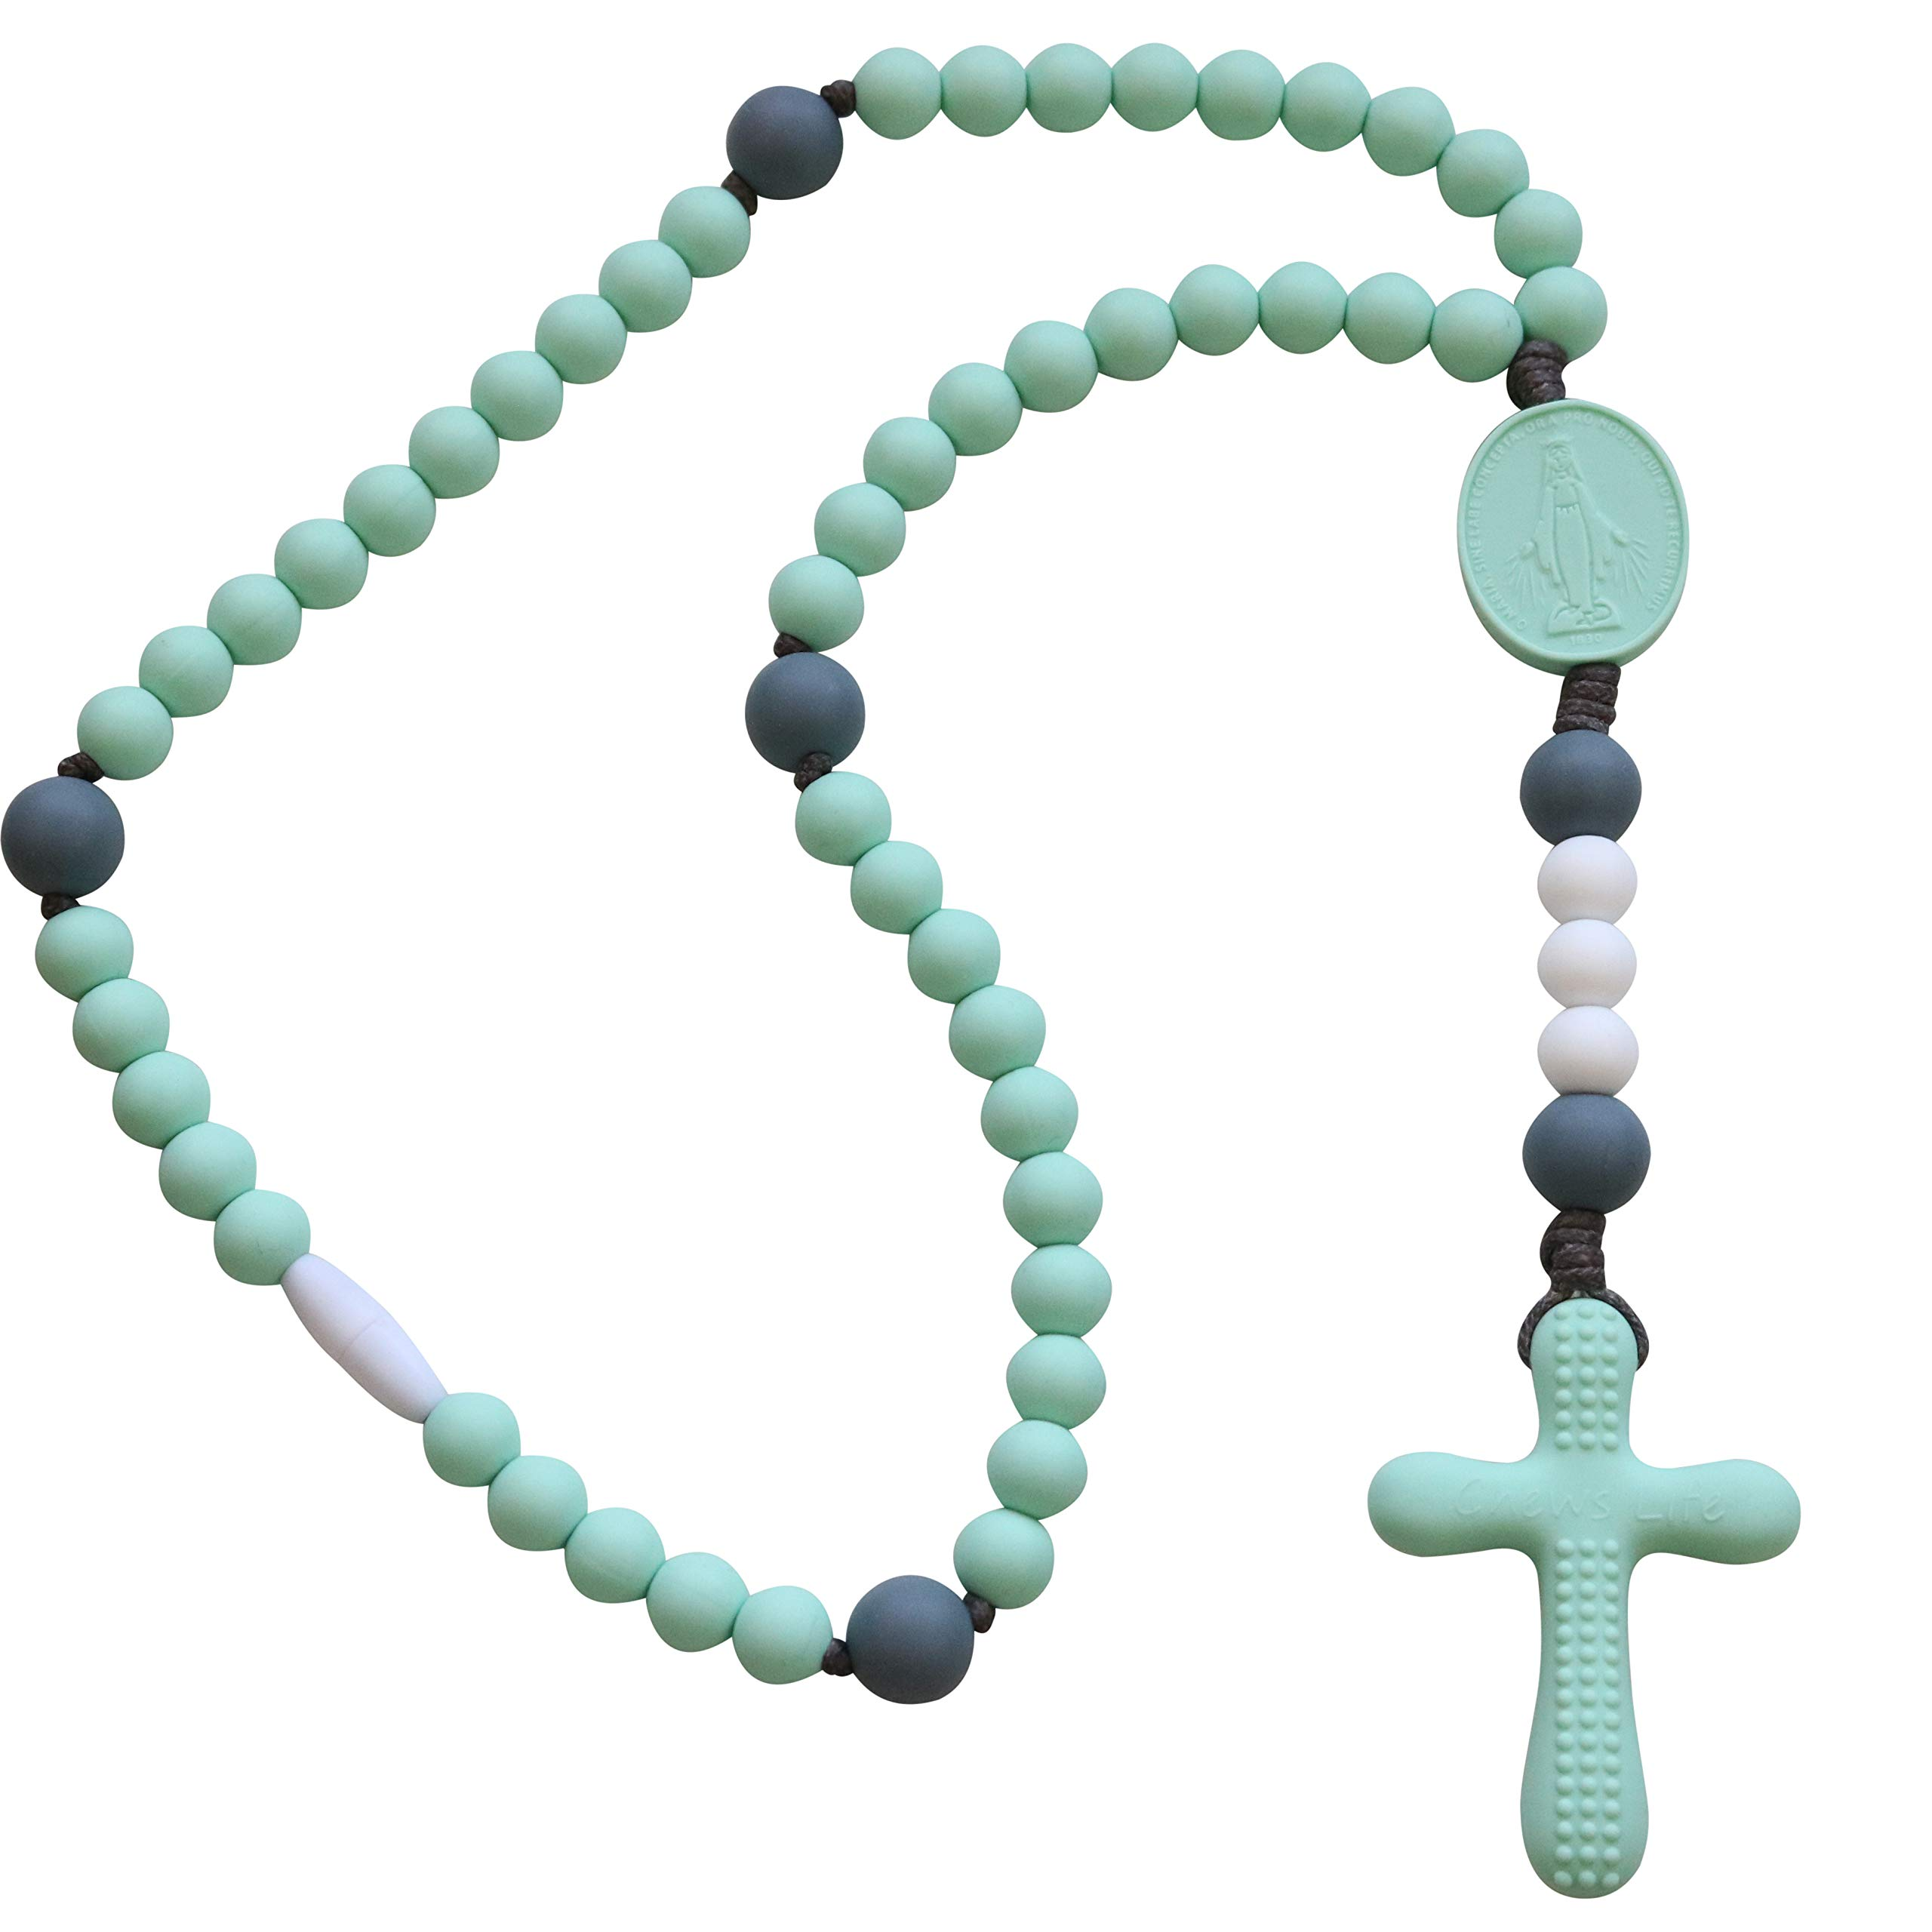 Chews Life - Teething Rosary Beads - Baptism Gift & Mass Toy for Catholic Girls & Boys, Handmade, Silicone Beads & Organic Cotton Cord - CPSIA Certified Safe - Mint & Gray by Chews Life